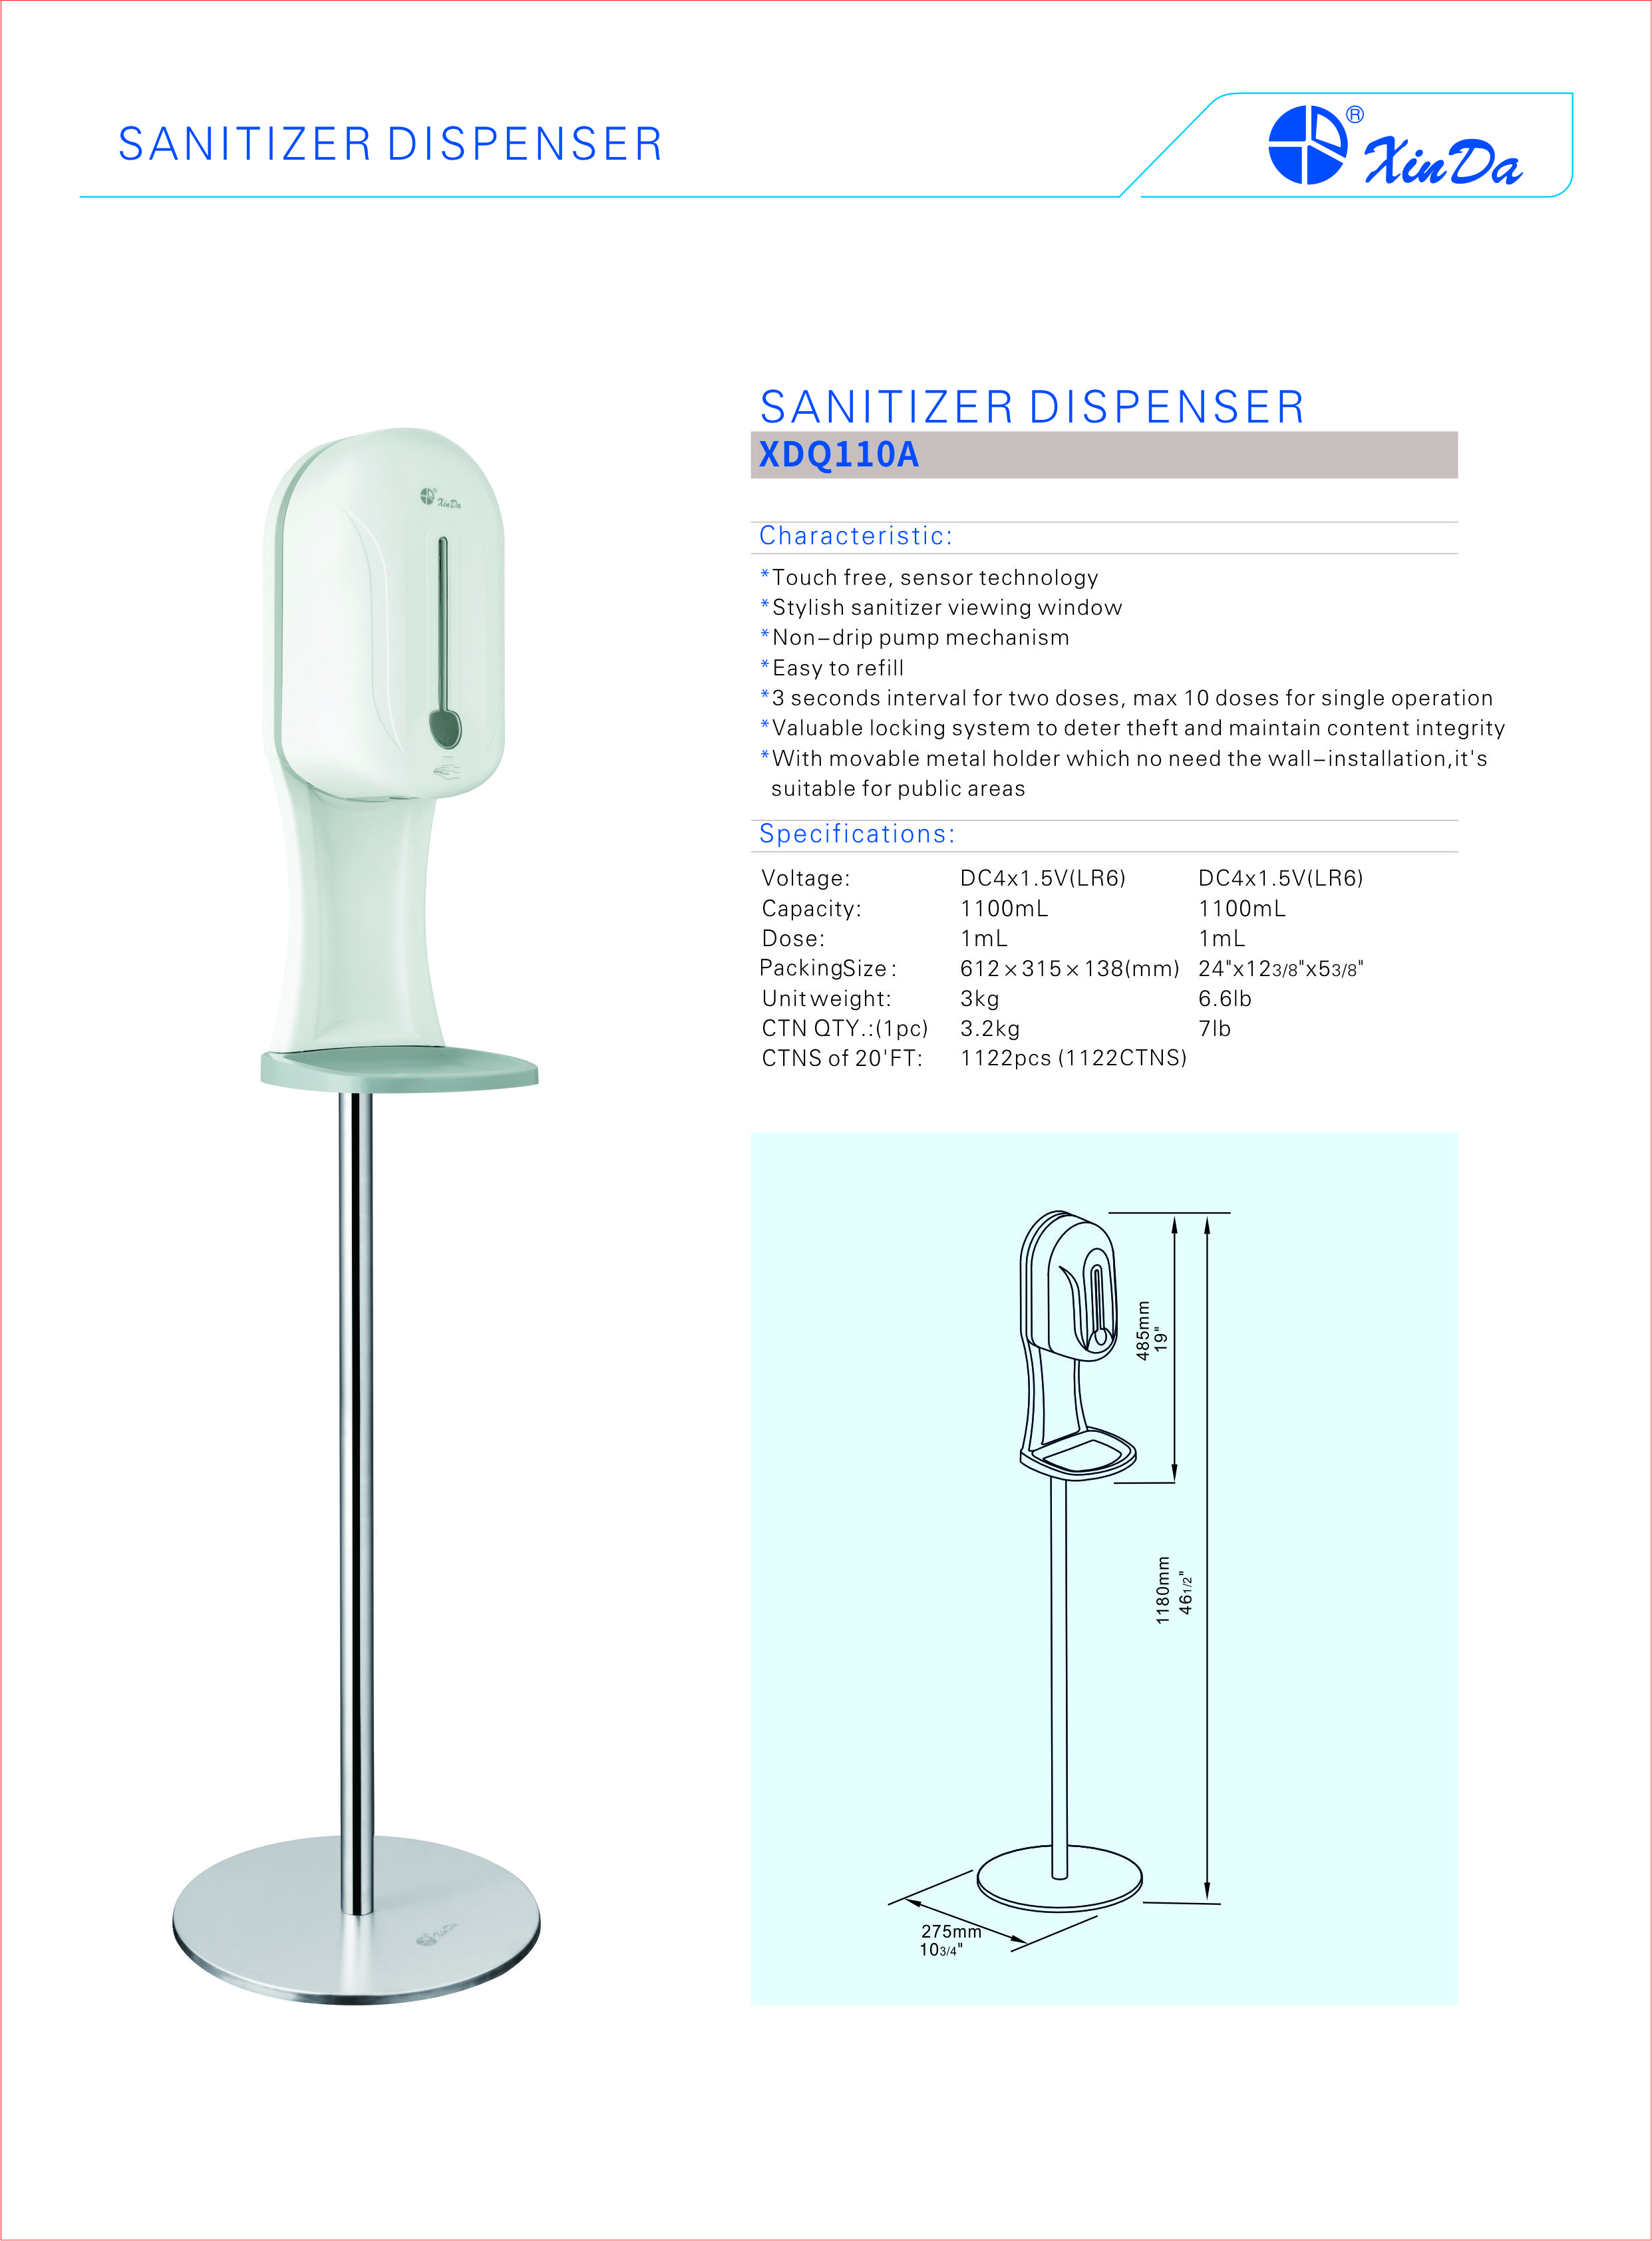 smart non-drip pump mechanism sanitizer dispenser